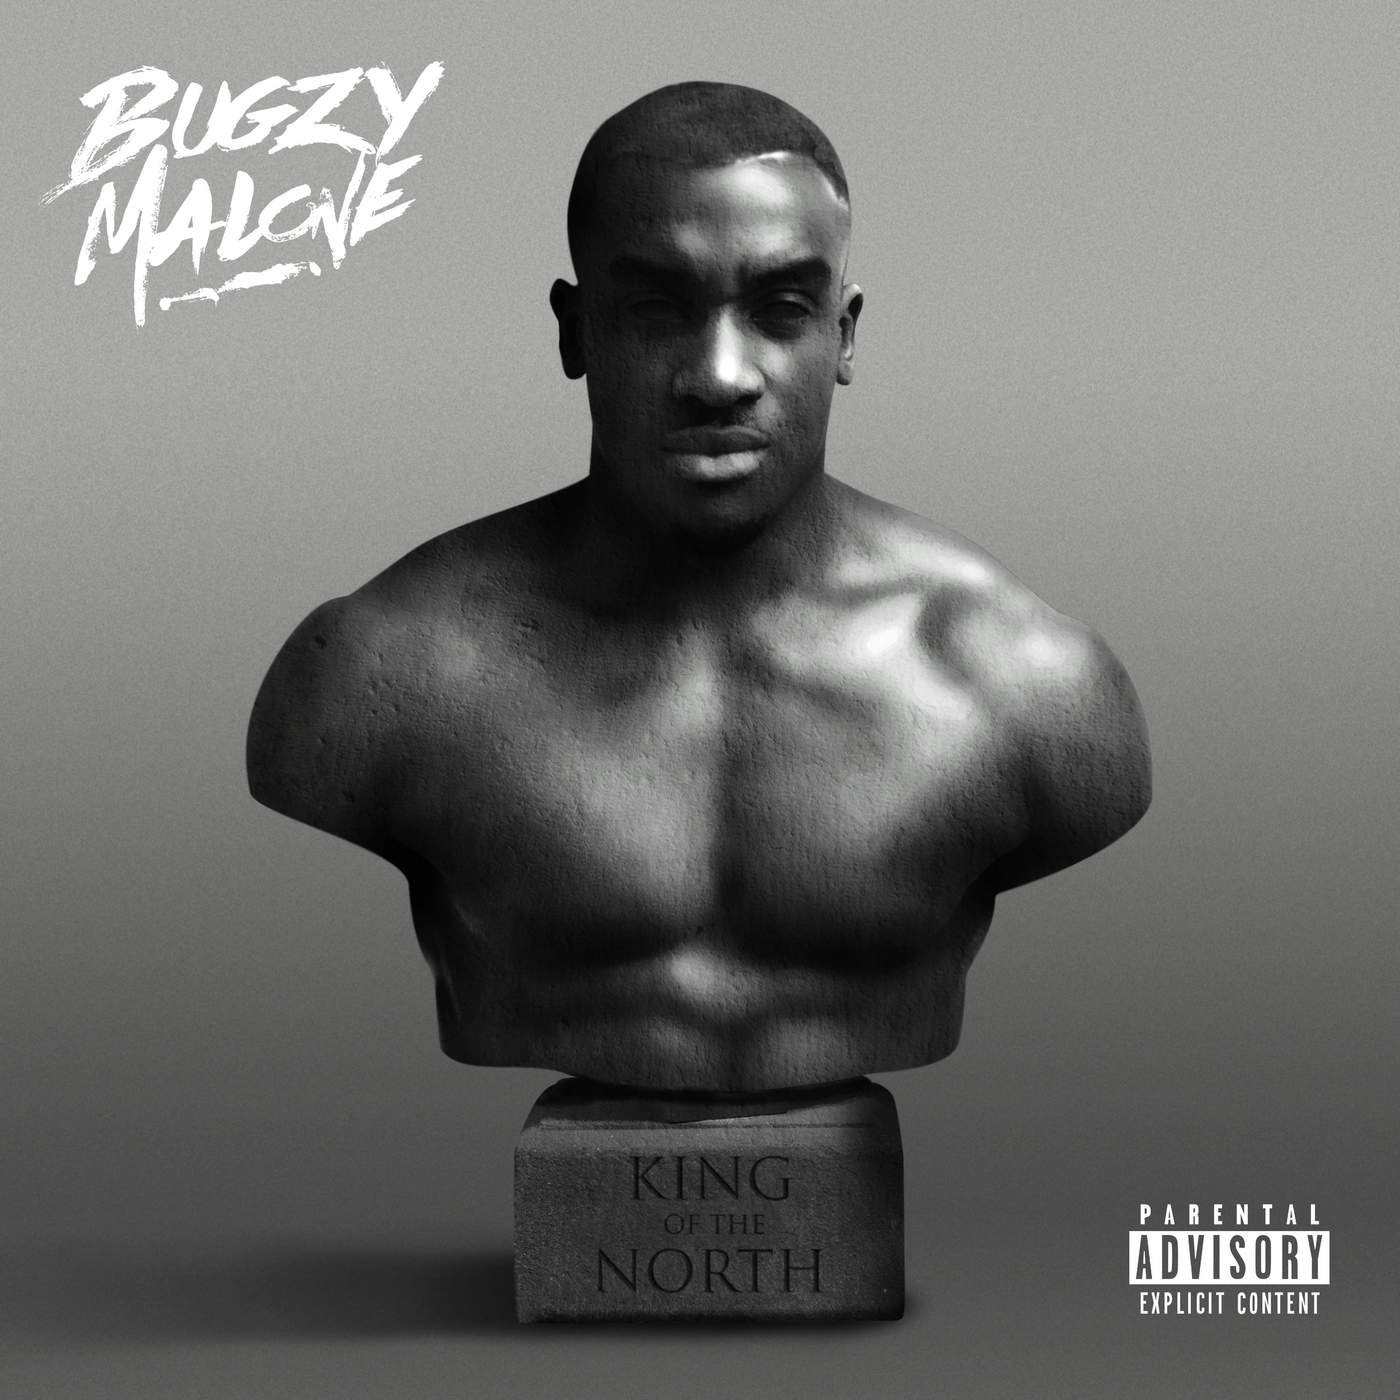 Bugzy Malone - King of the North Cover